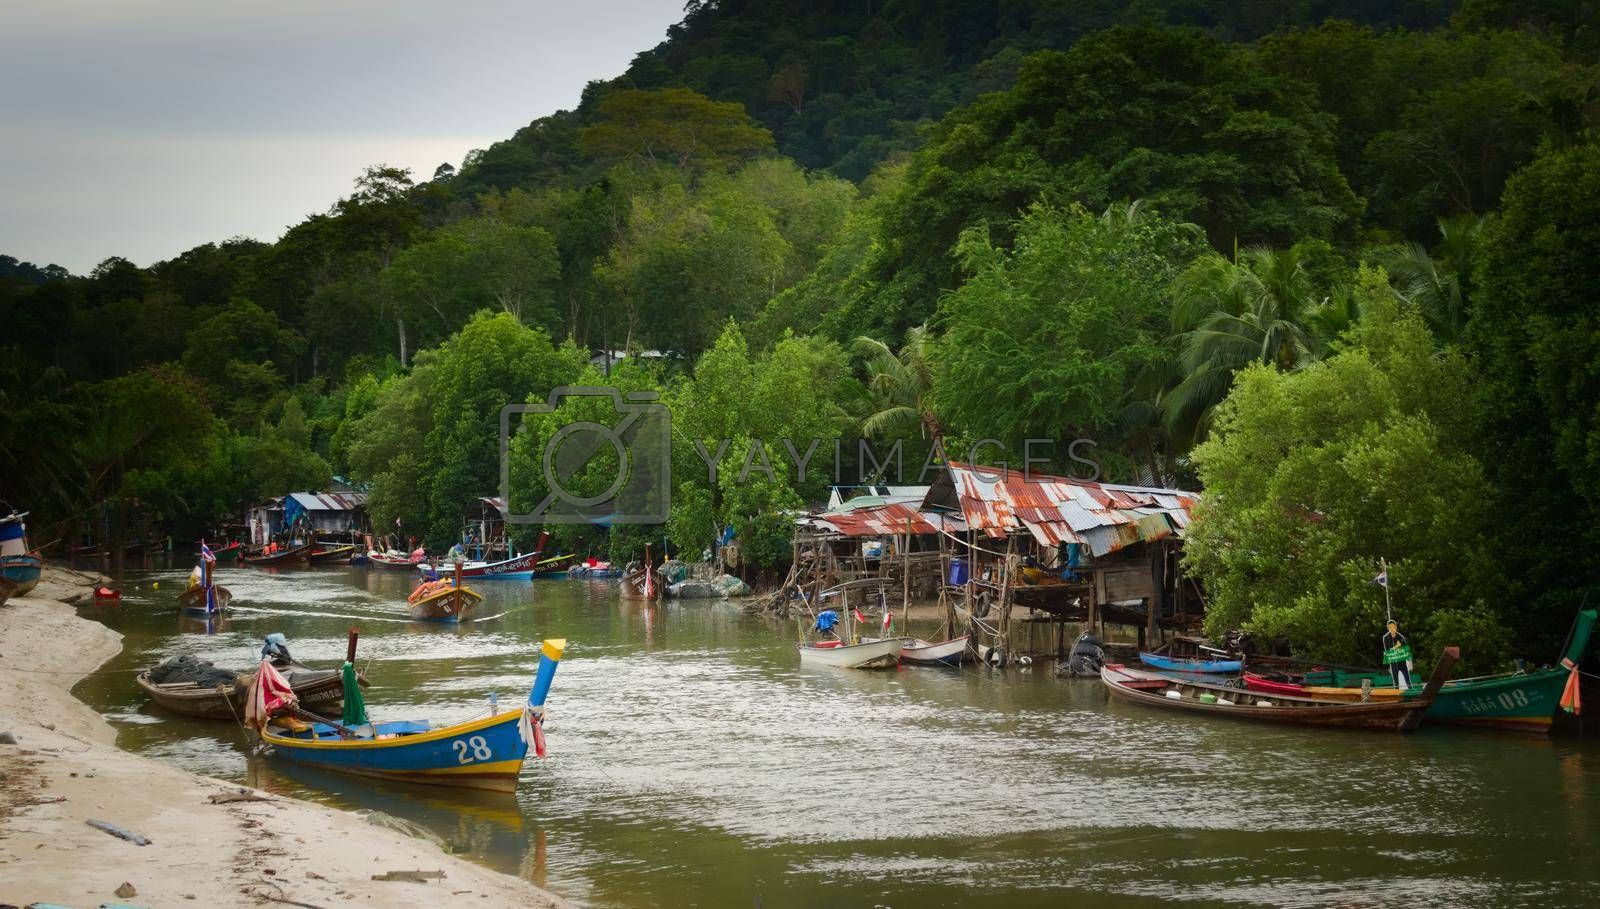 Royalty free image of 2019-11-05 / Phuket, Thailand - Wooden shacks by the river in a poverty stricken area of the town. by hernan_hyper